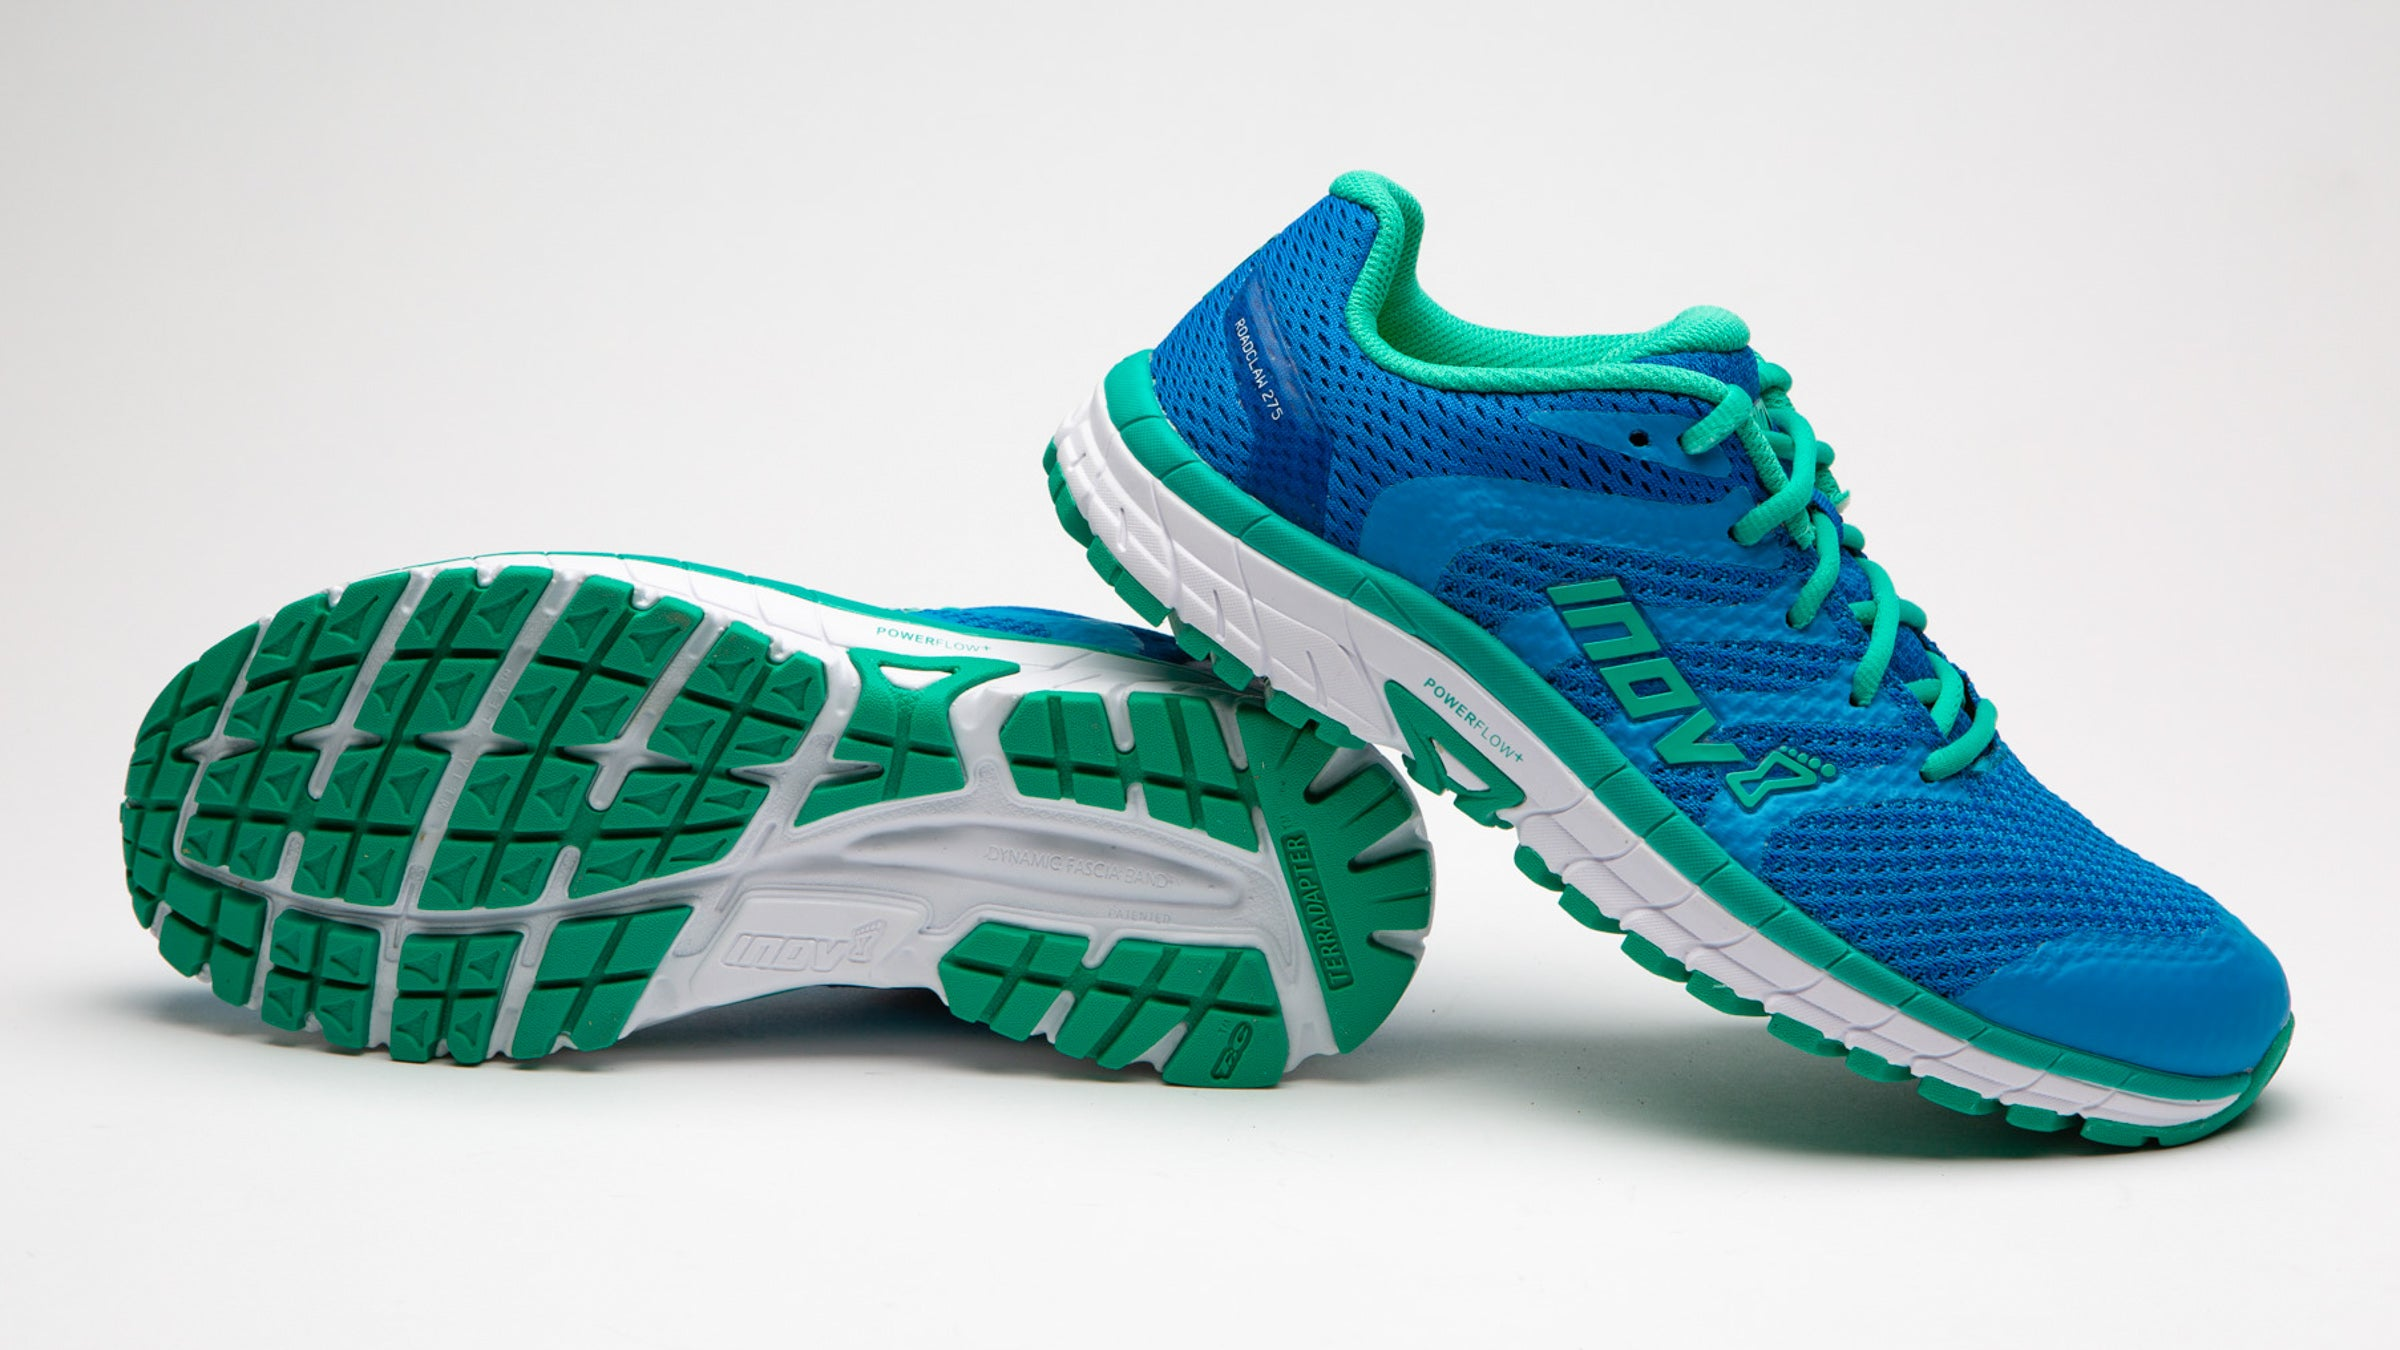 Inov8 Road Claw 275 Knit, lightweight running shoes